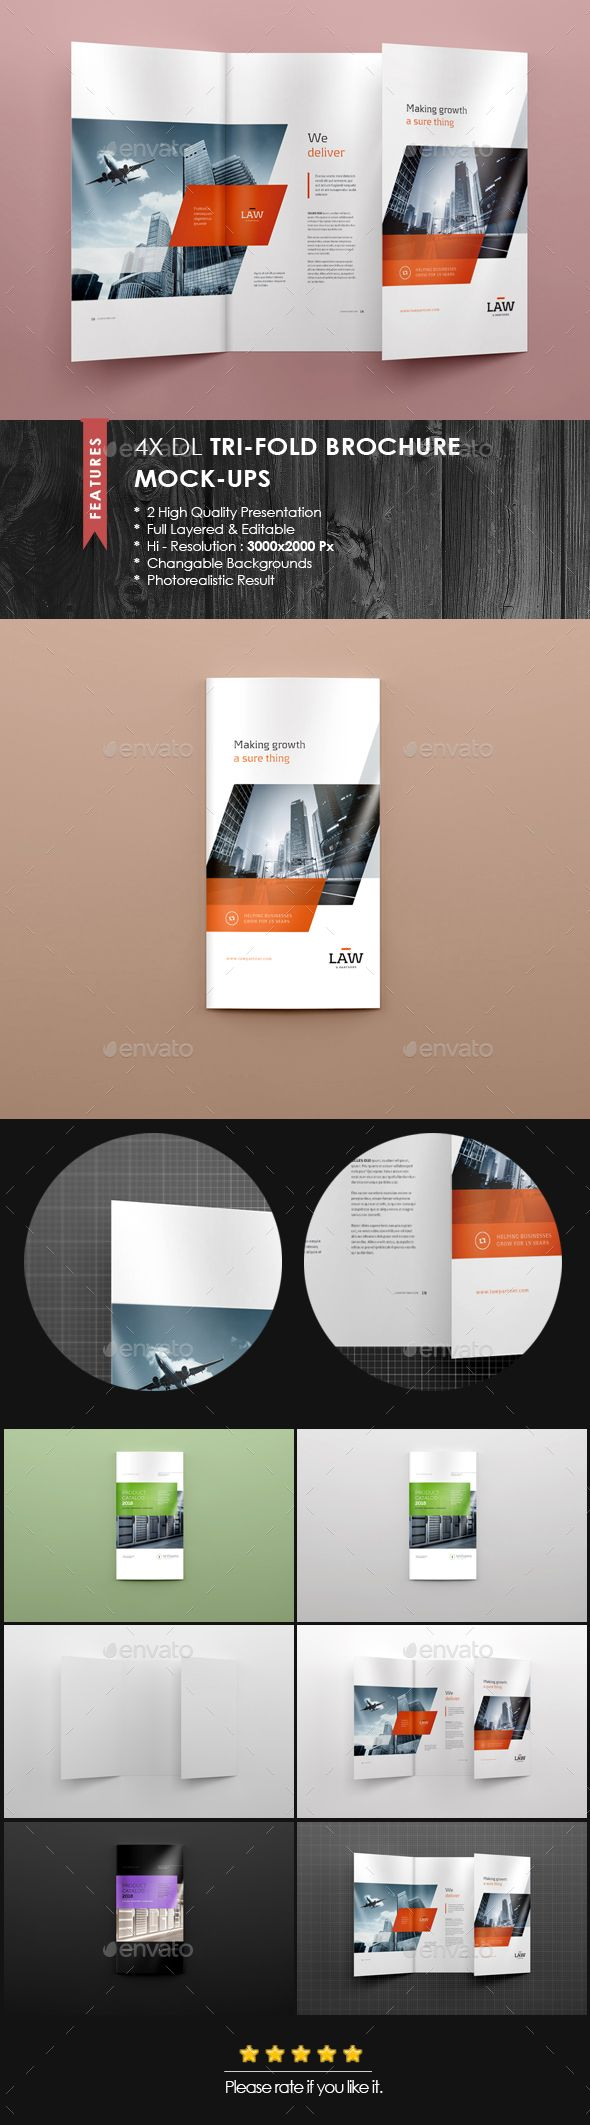 Pin By Best Graphic Design On Mockup    Brochures